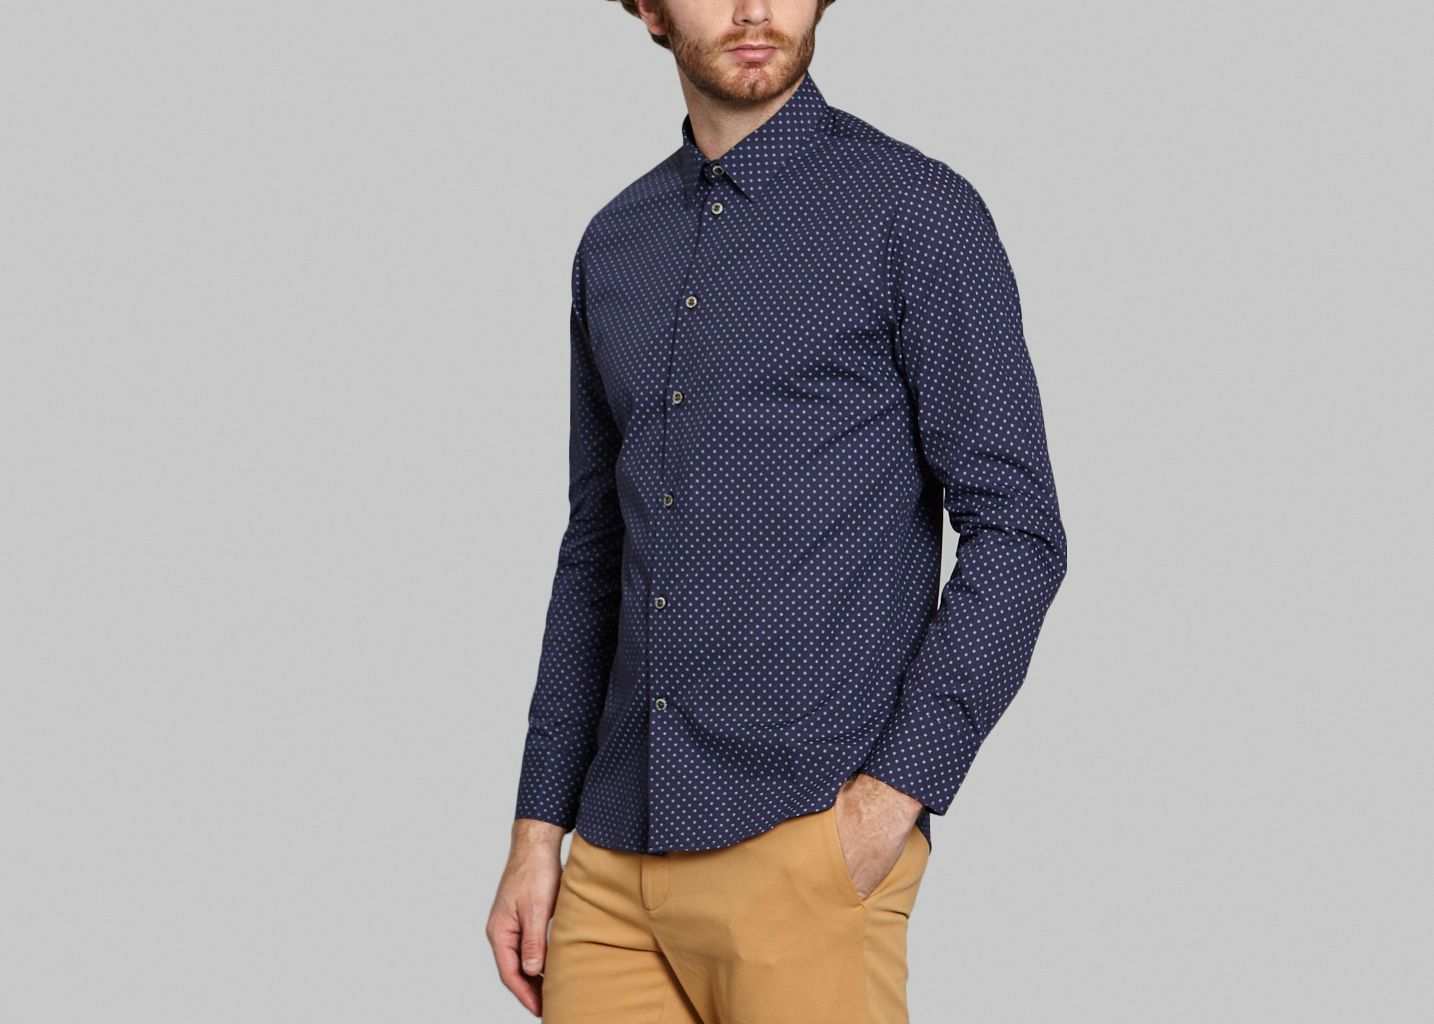 846fe26a850bf8 Woven Shirt Navy Blue Paul   Joe   L Exception